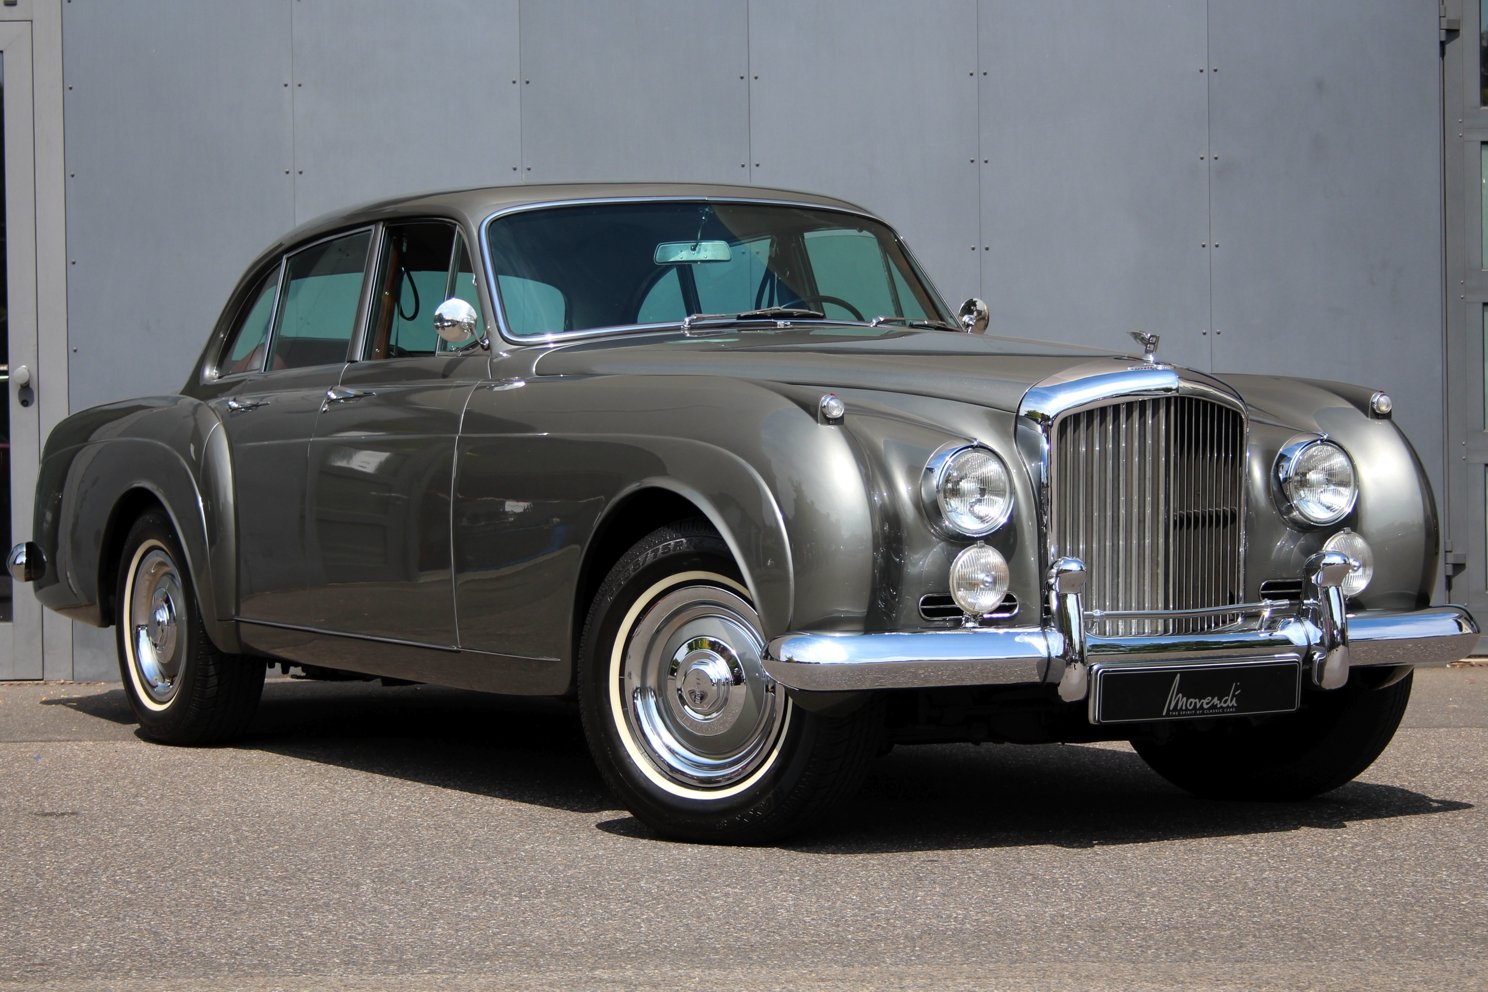 1961 Bentley S2 Continental Flying Spur LHD For Sale (picture 1 of 6)